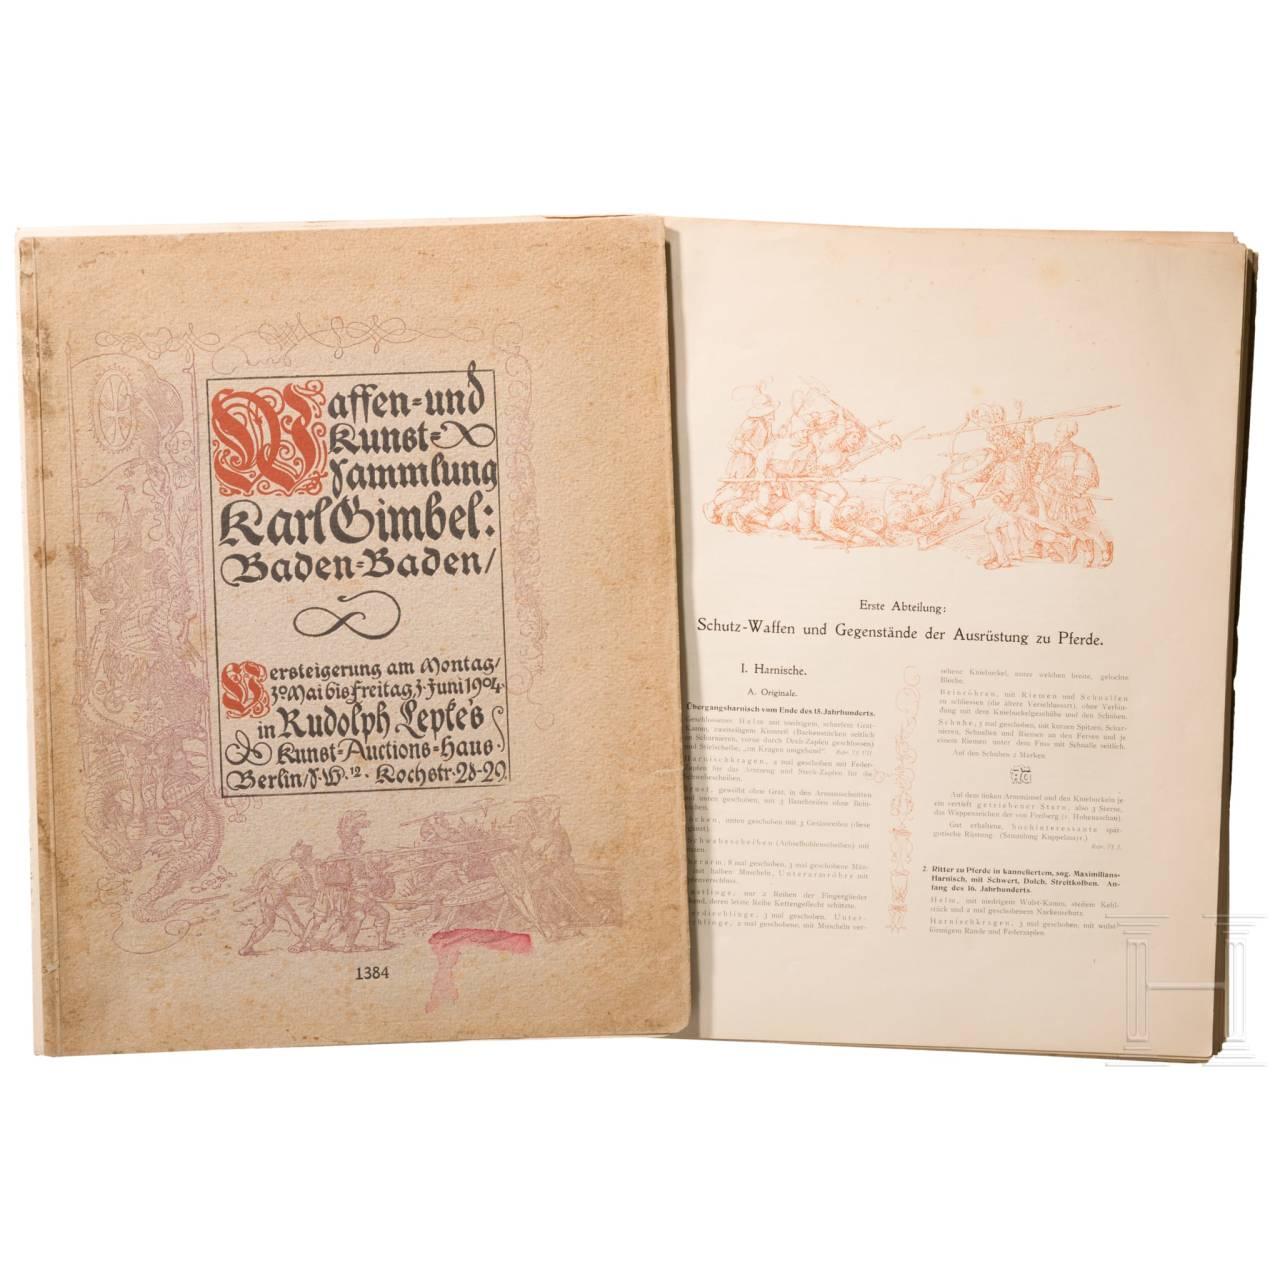 Auction catalogue of the Karl Gimbel weapons collection, Berlin 1904